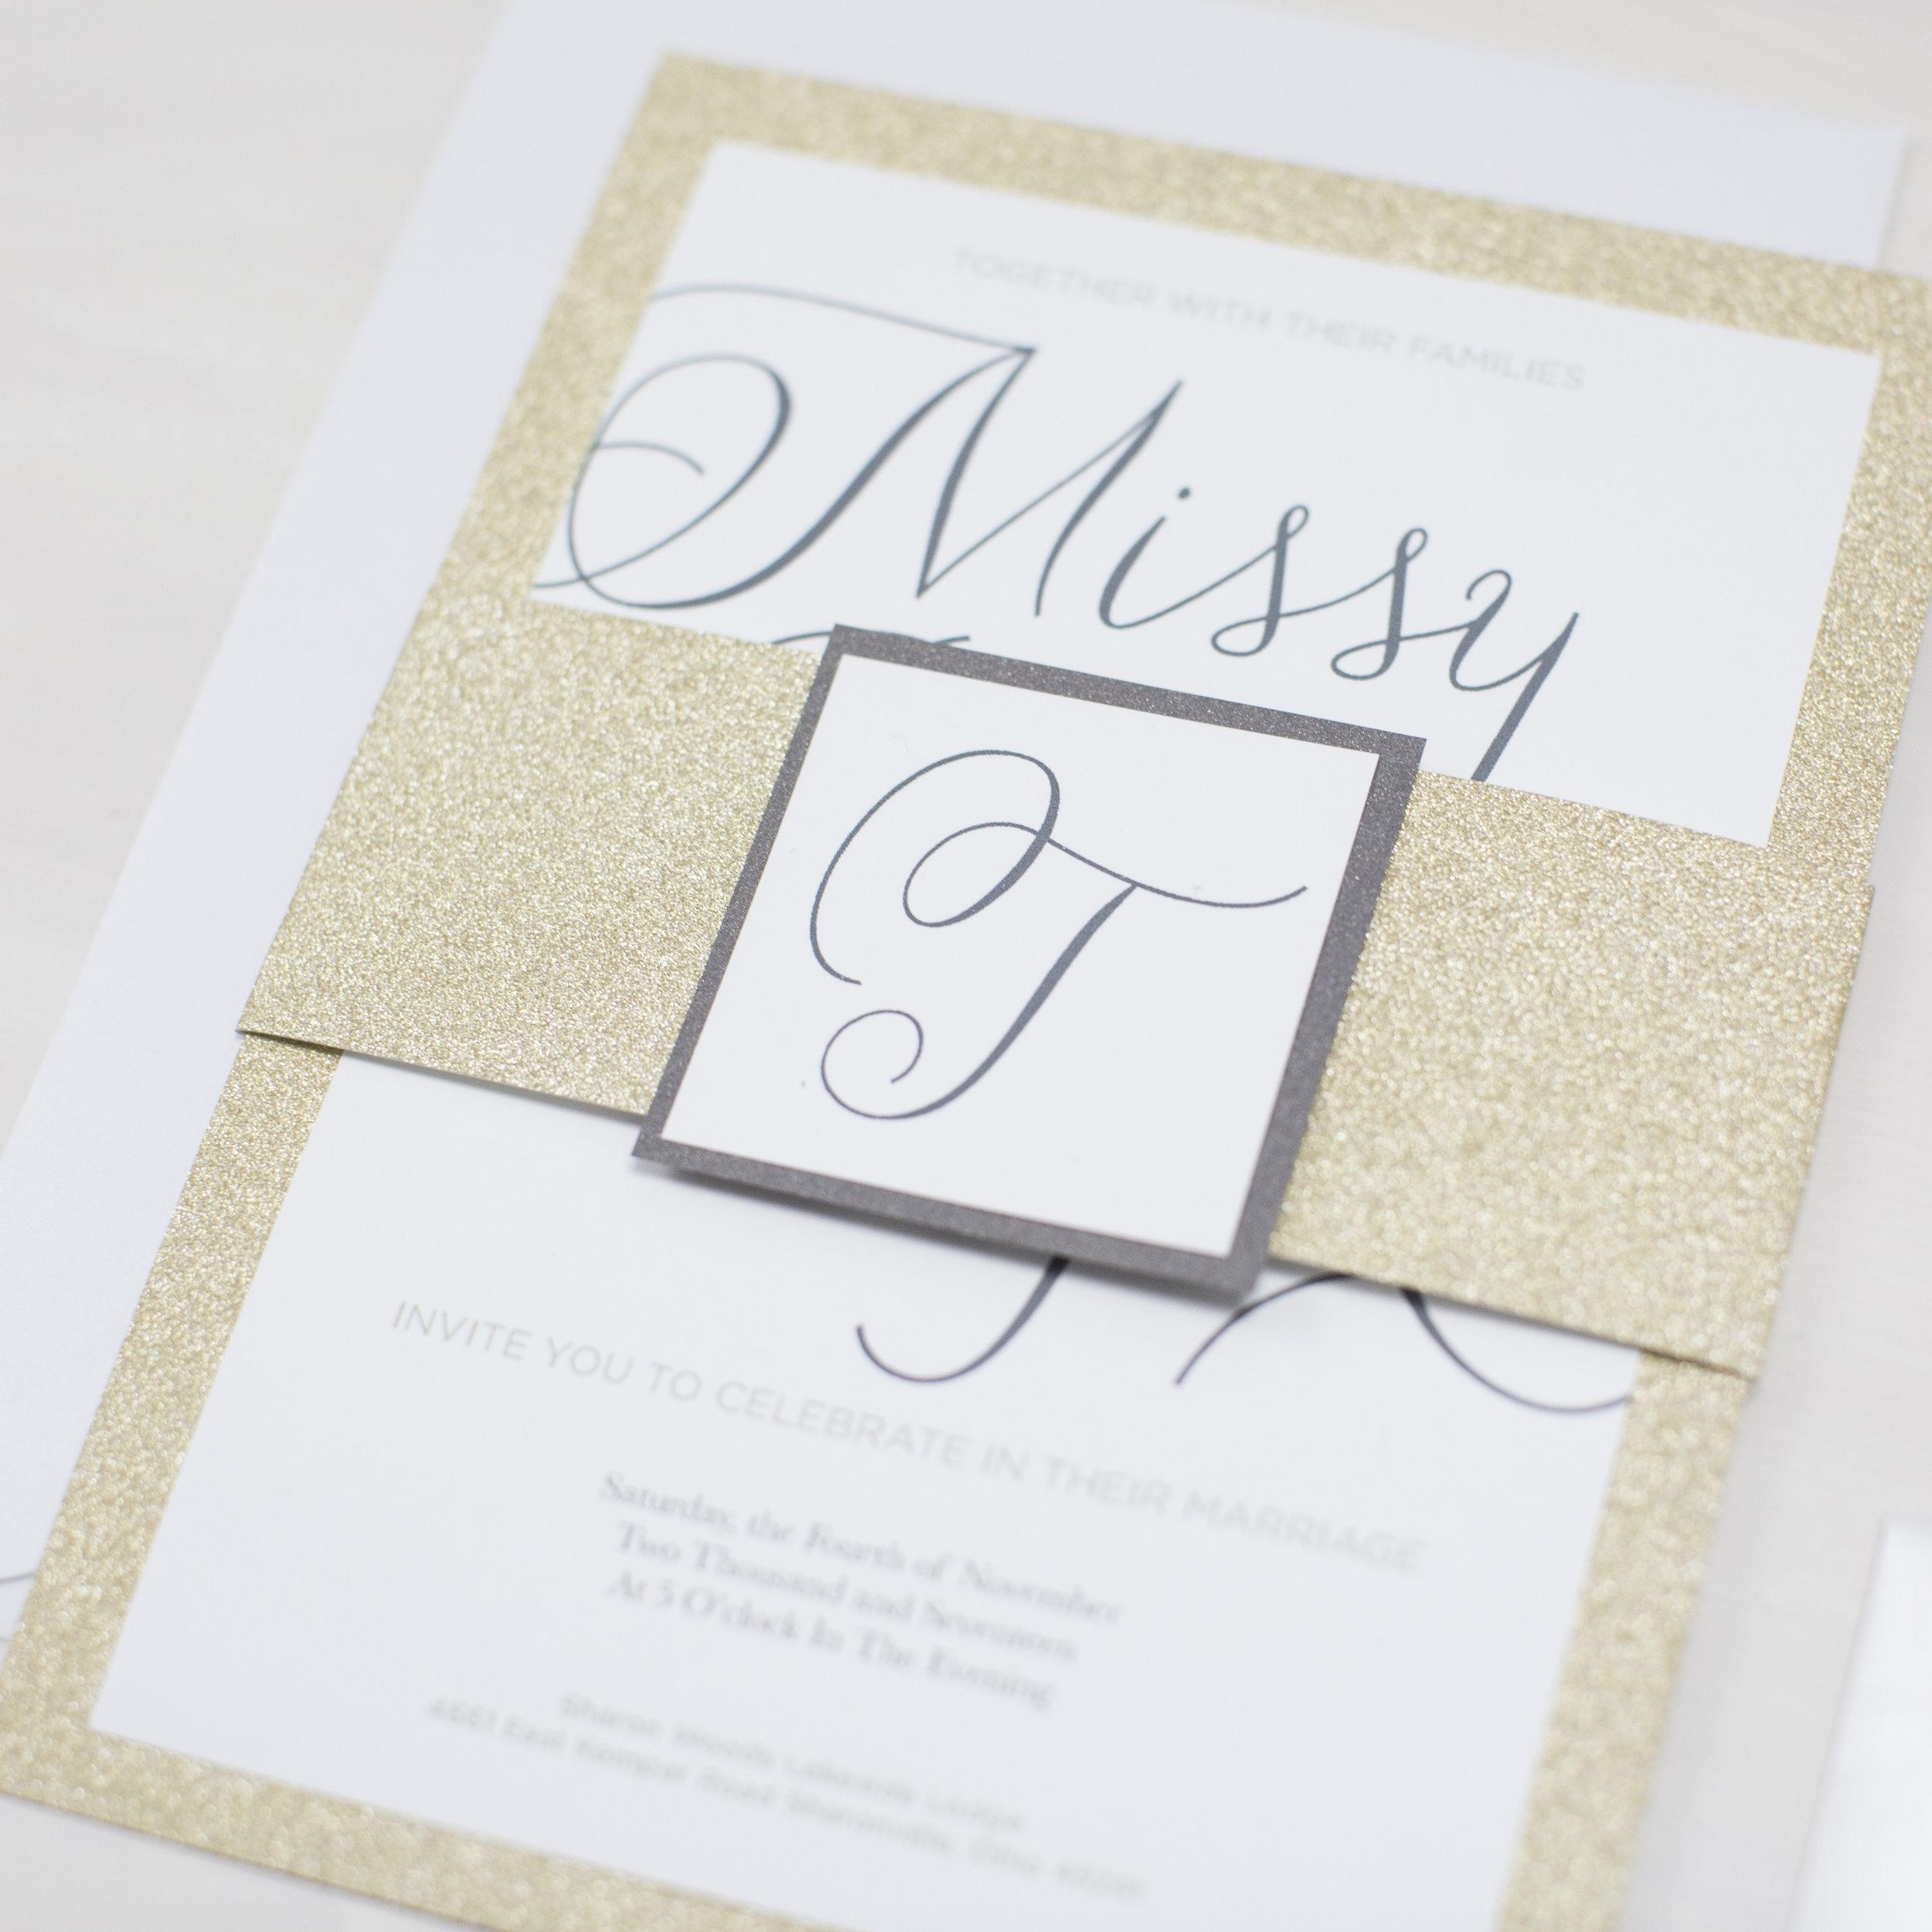 Wedding invitations Archives - Honeyfund Blog by Honeyfund.com, the ...